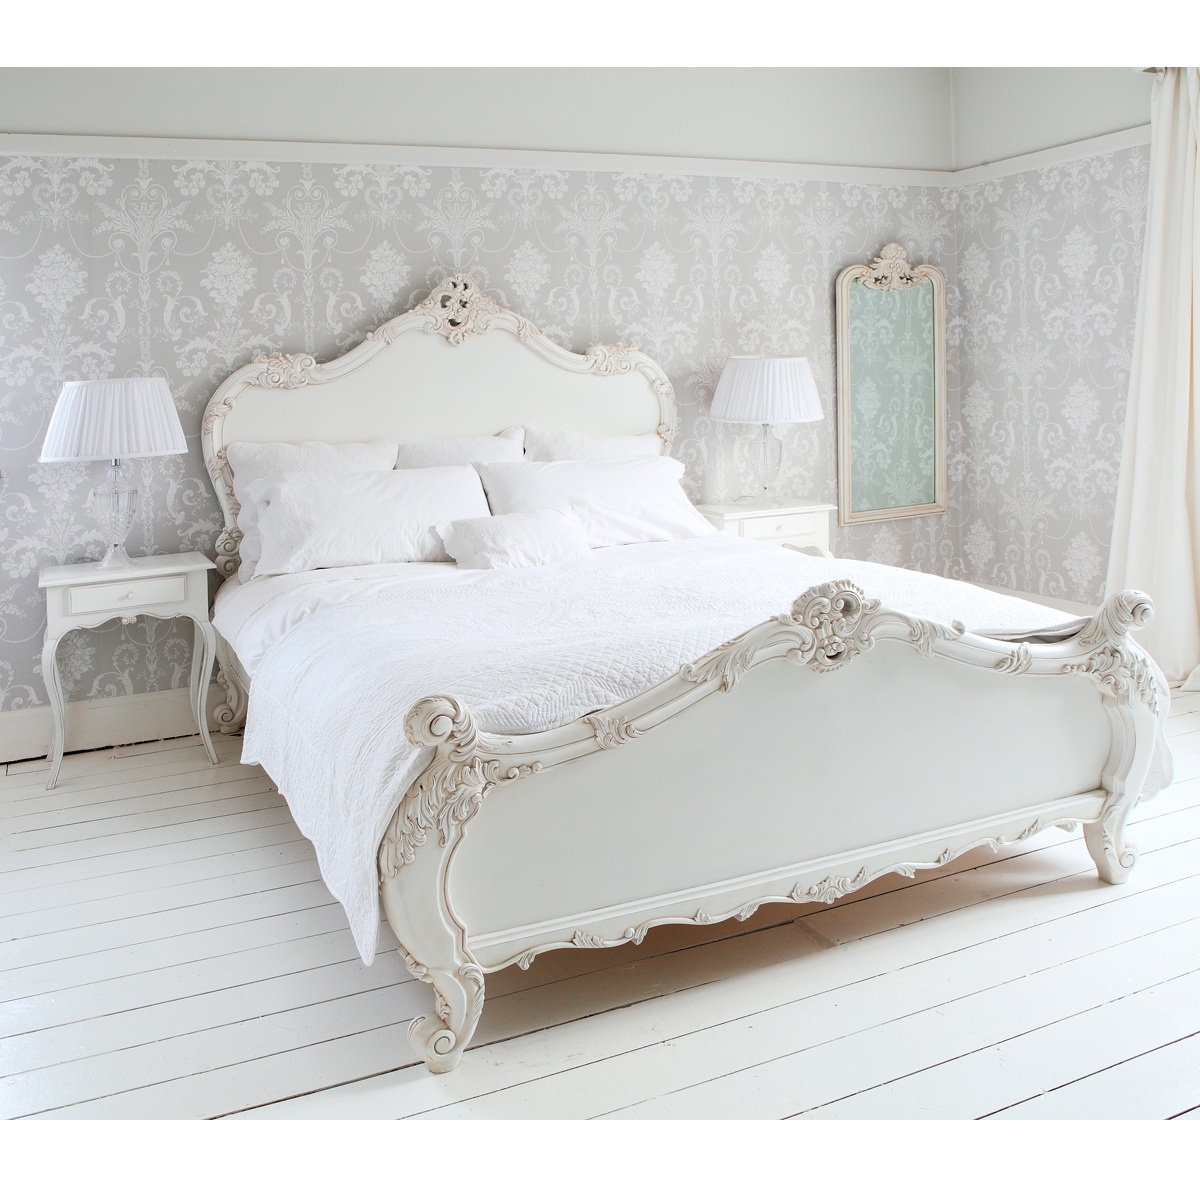 French Bedroom Furniture Room 4 Interiors